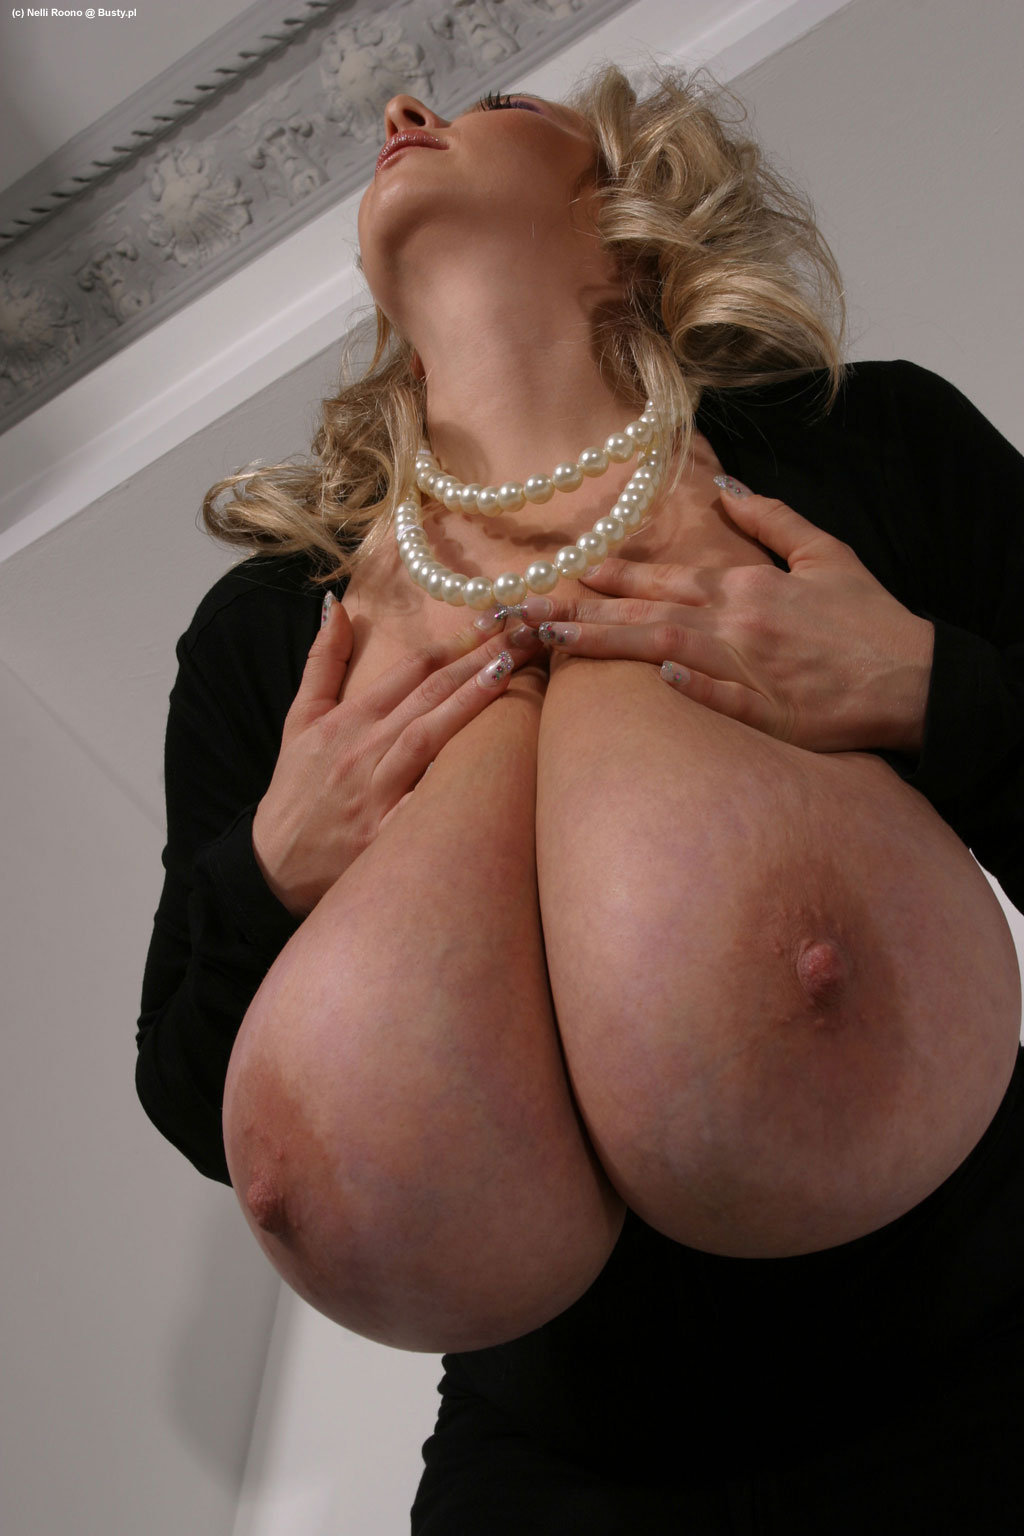 Nelli roono big boobs squished mommy got boobs 2